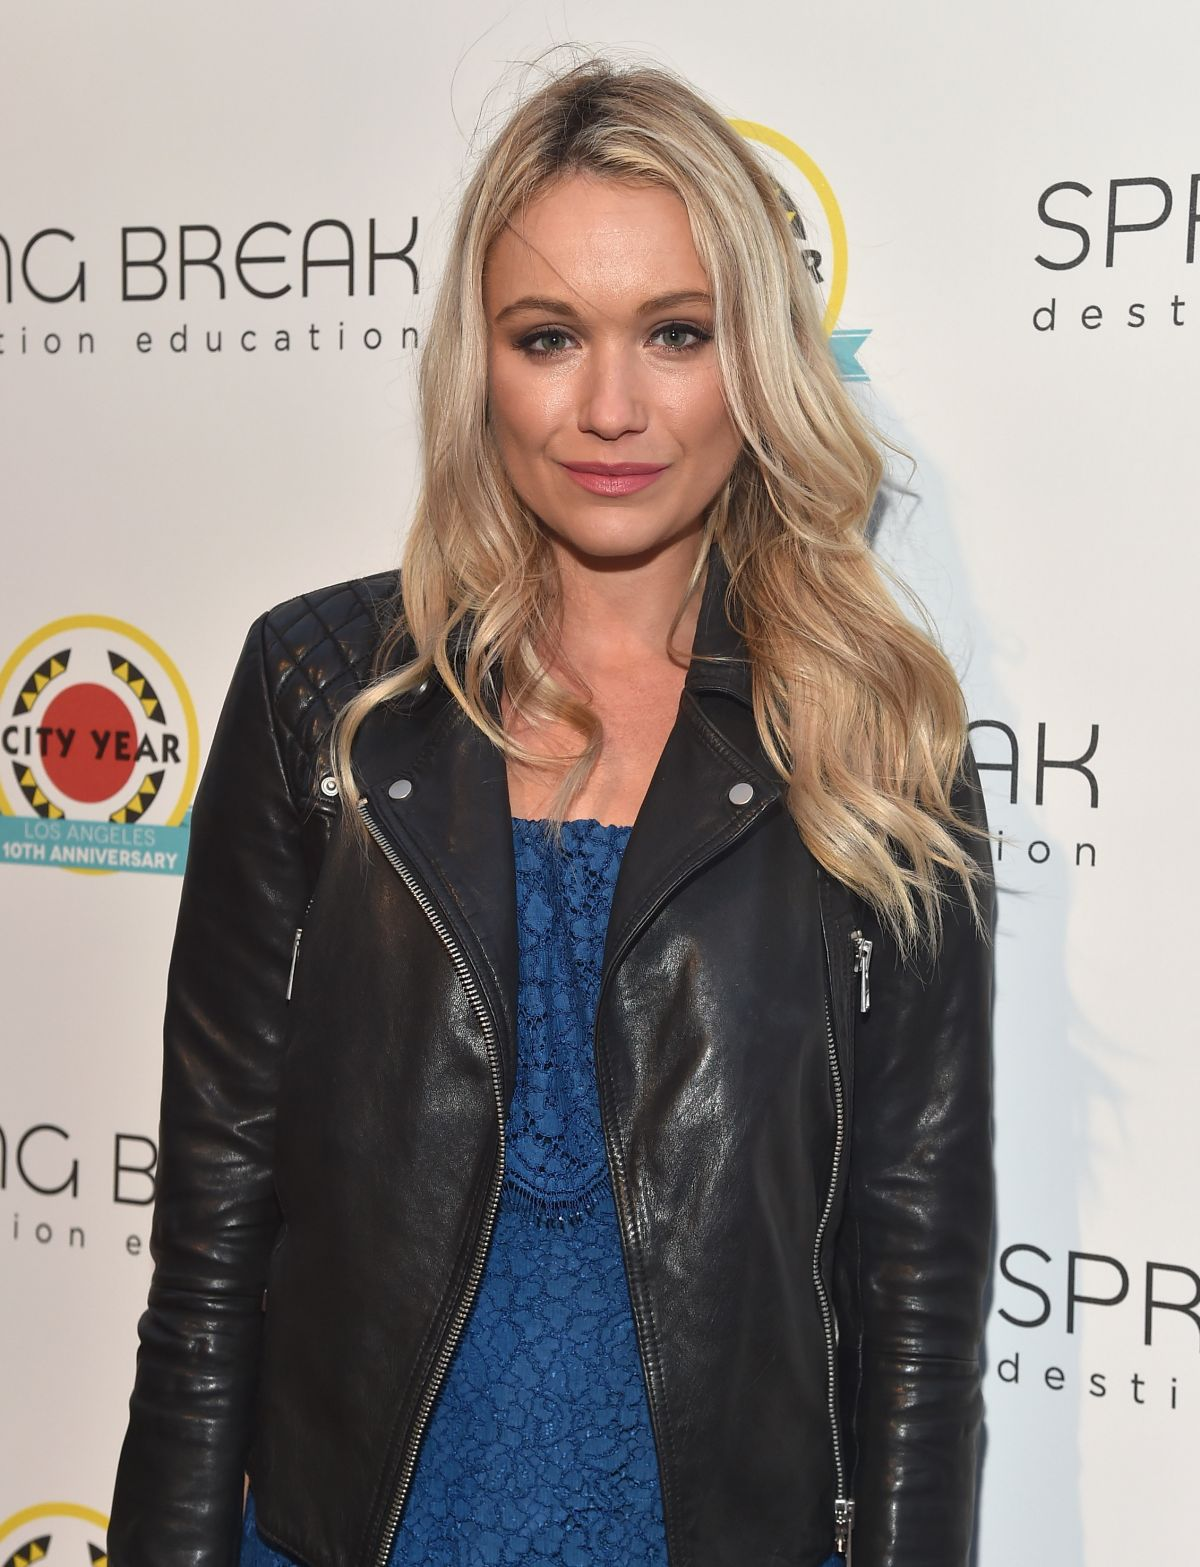 KATRINA BOWDEN at City Year Los Angeles Spring Break in Los Angeles 05/06/2017